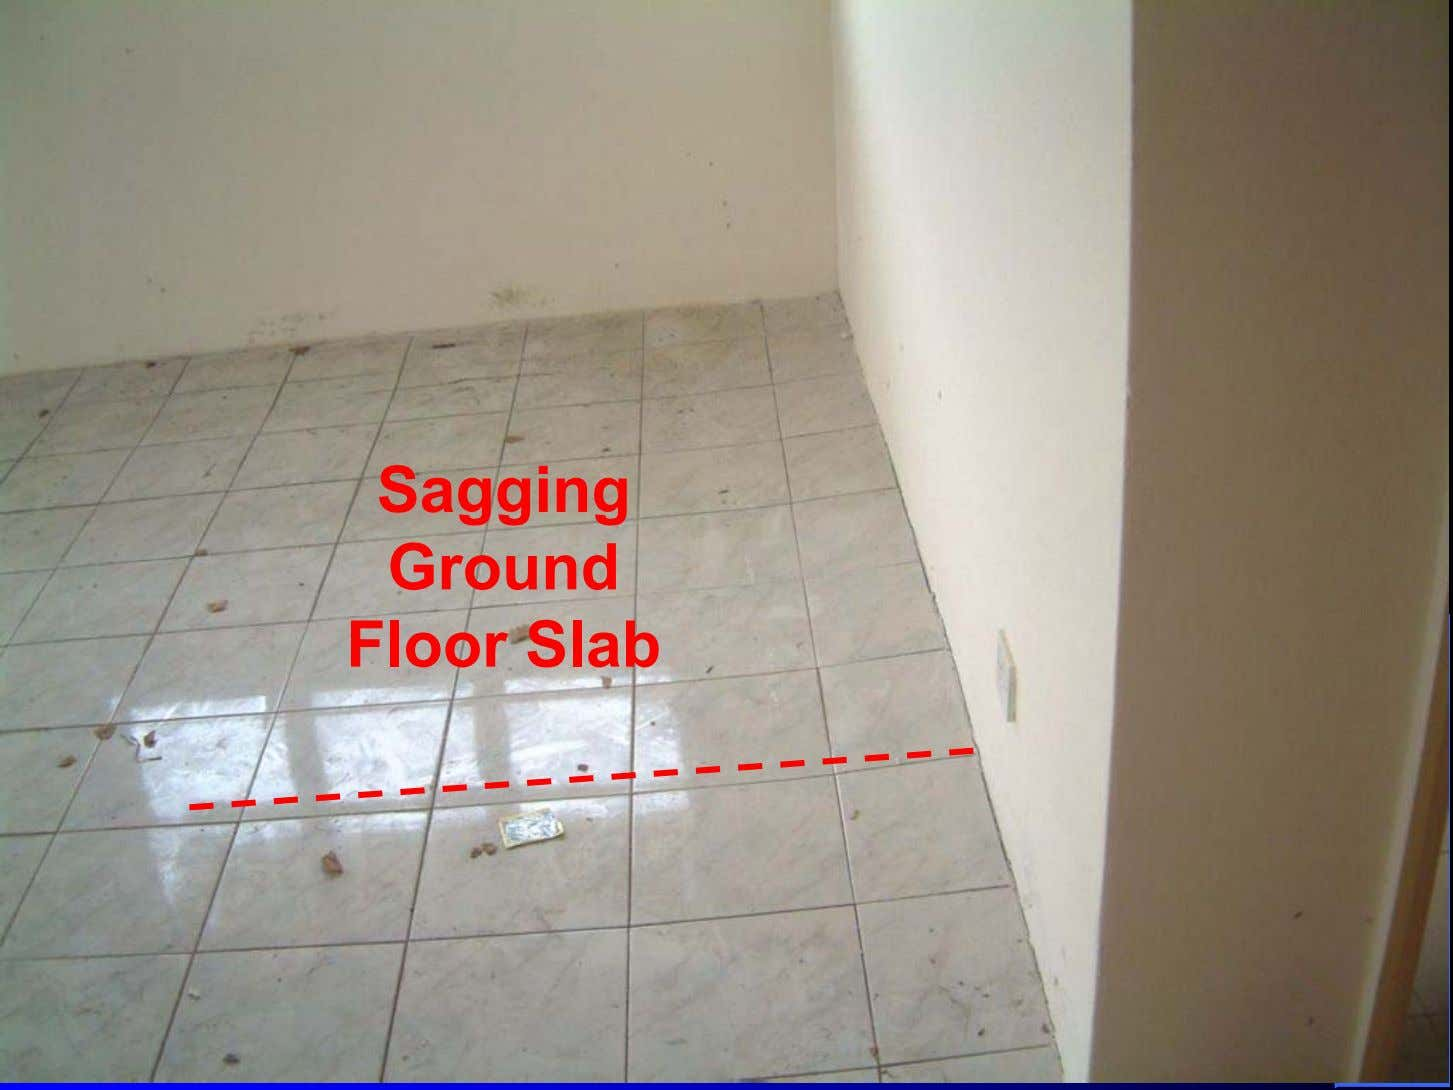 Sagging Ground Floor Slab